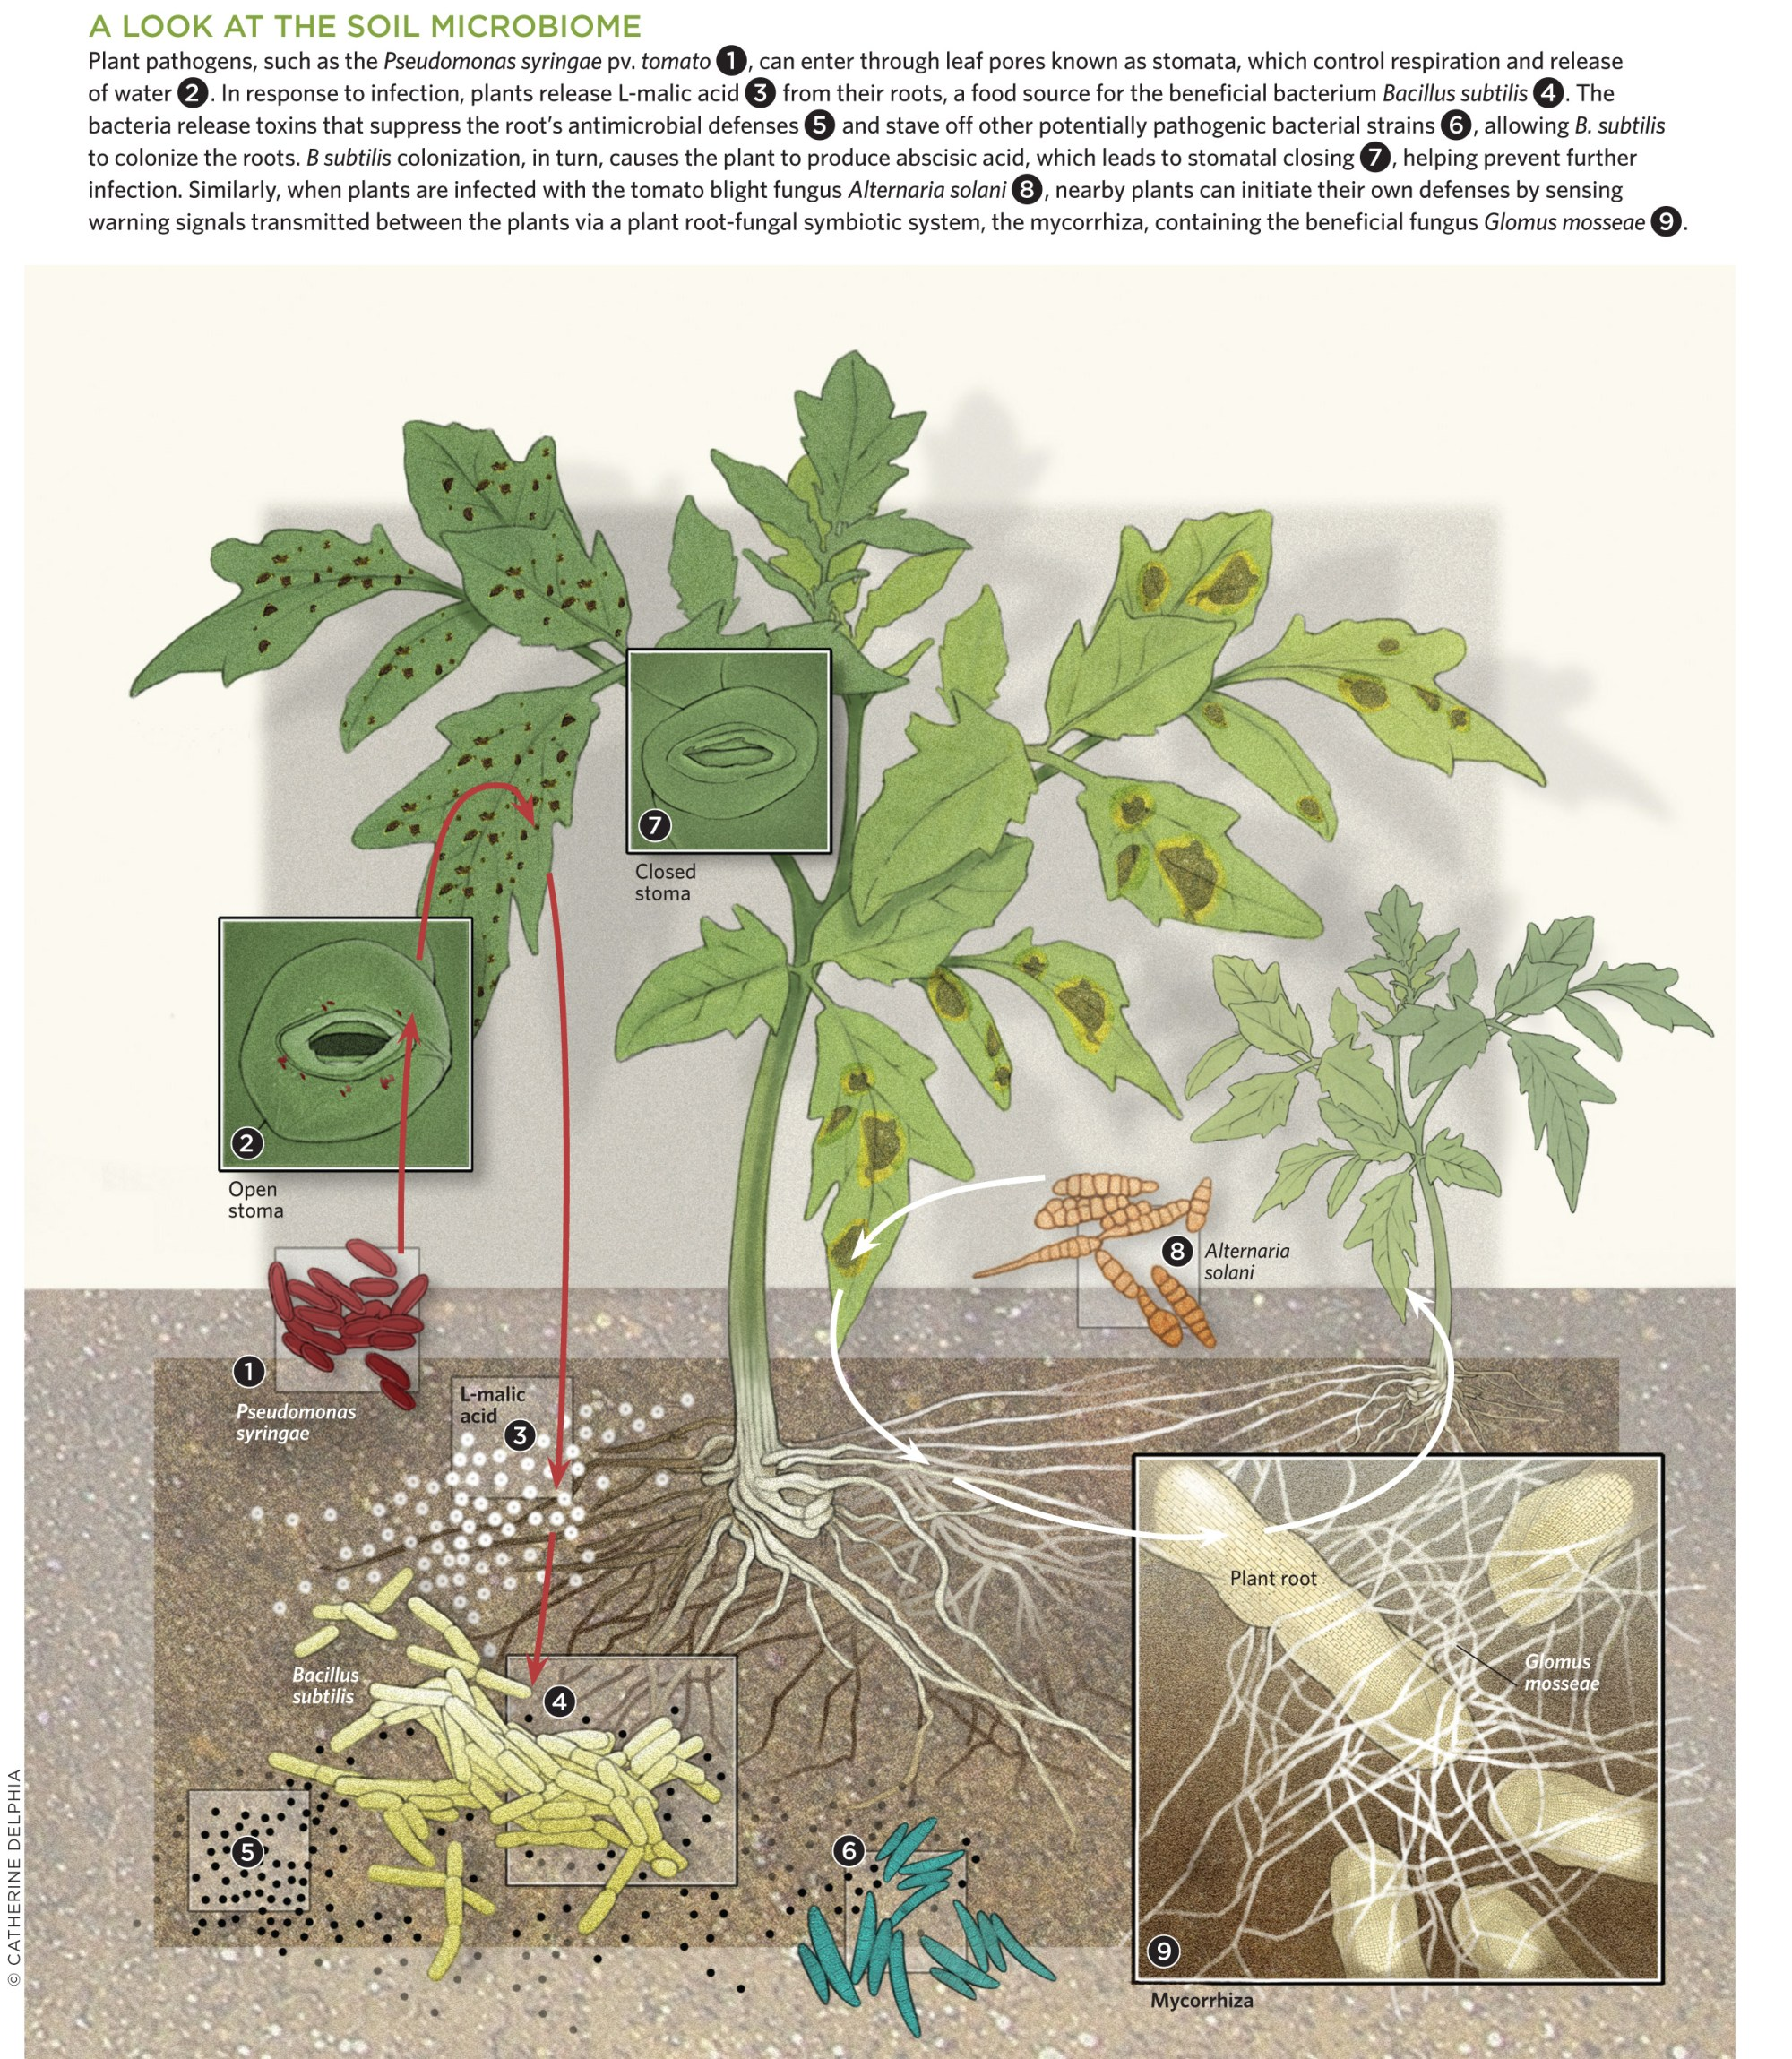 hight resolution of a look at the soil microbiome view full size